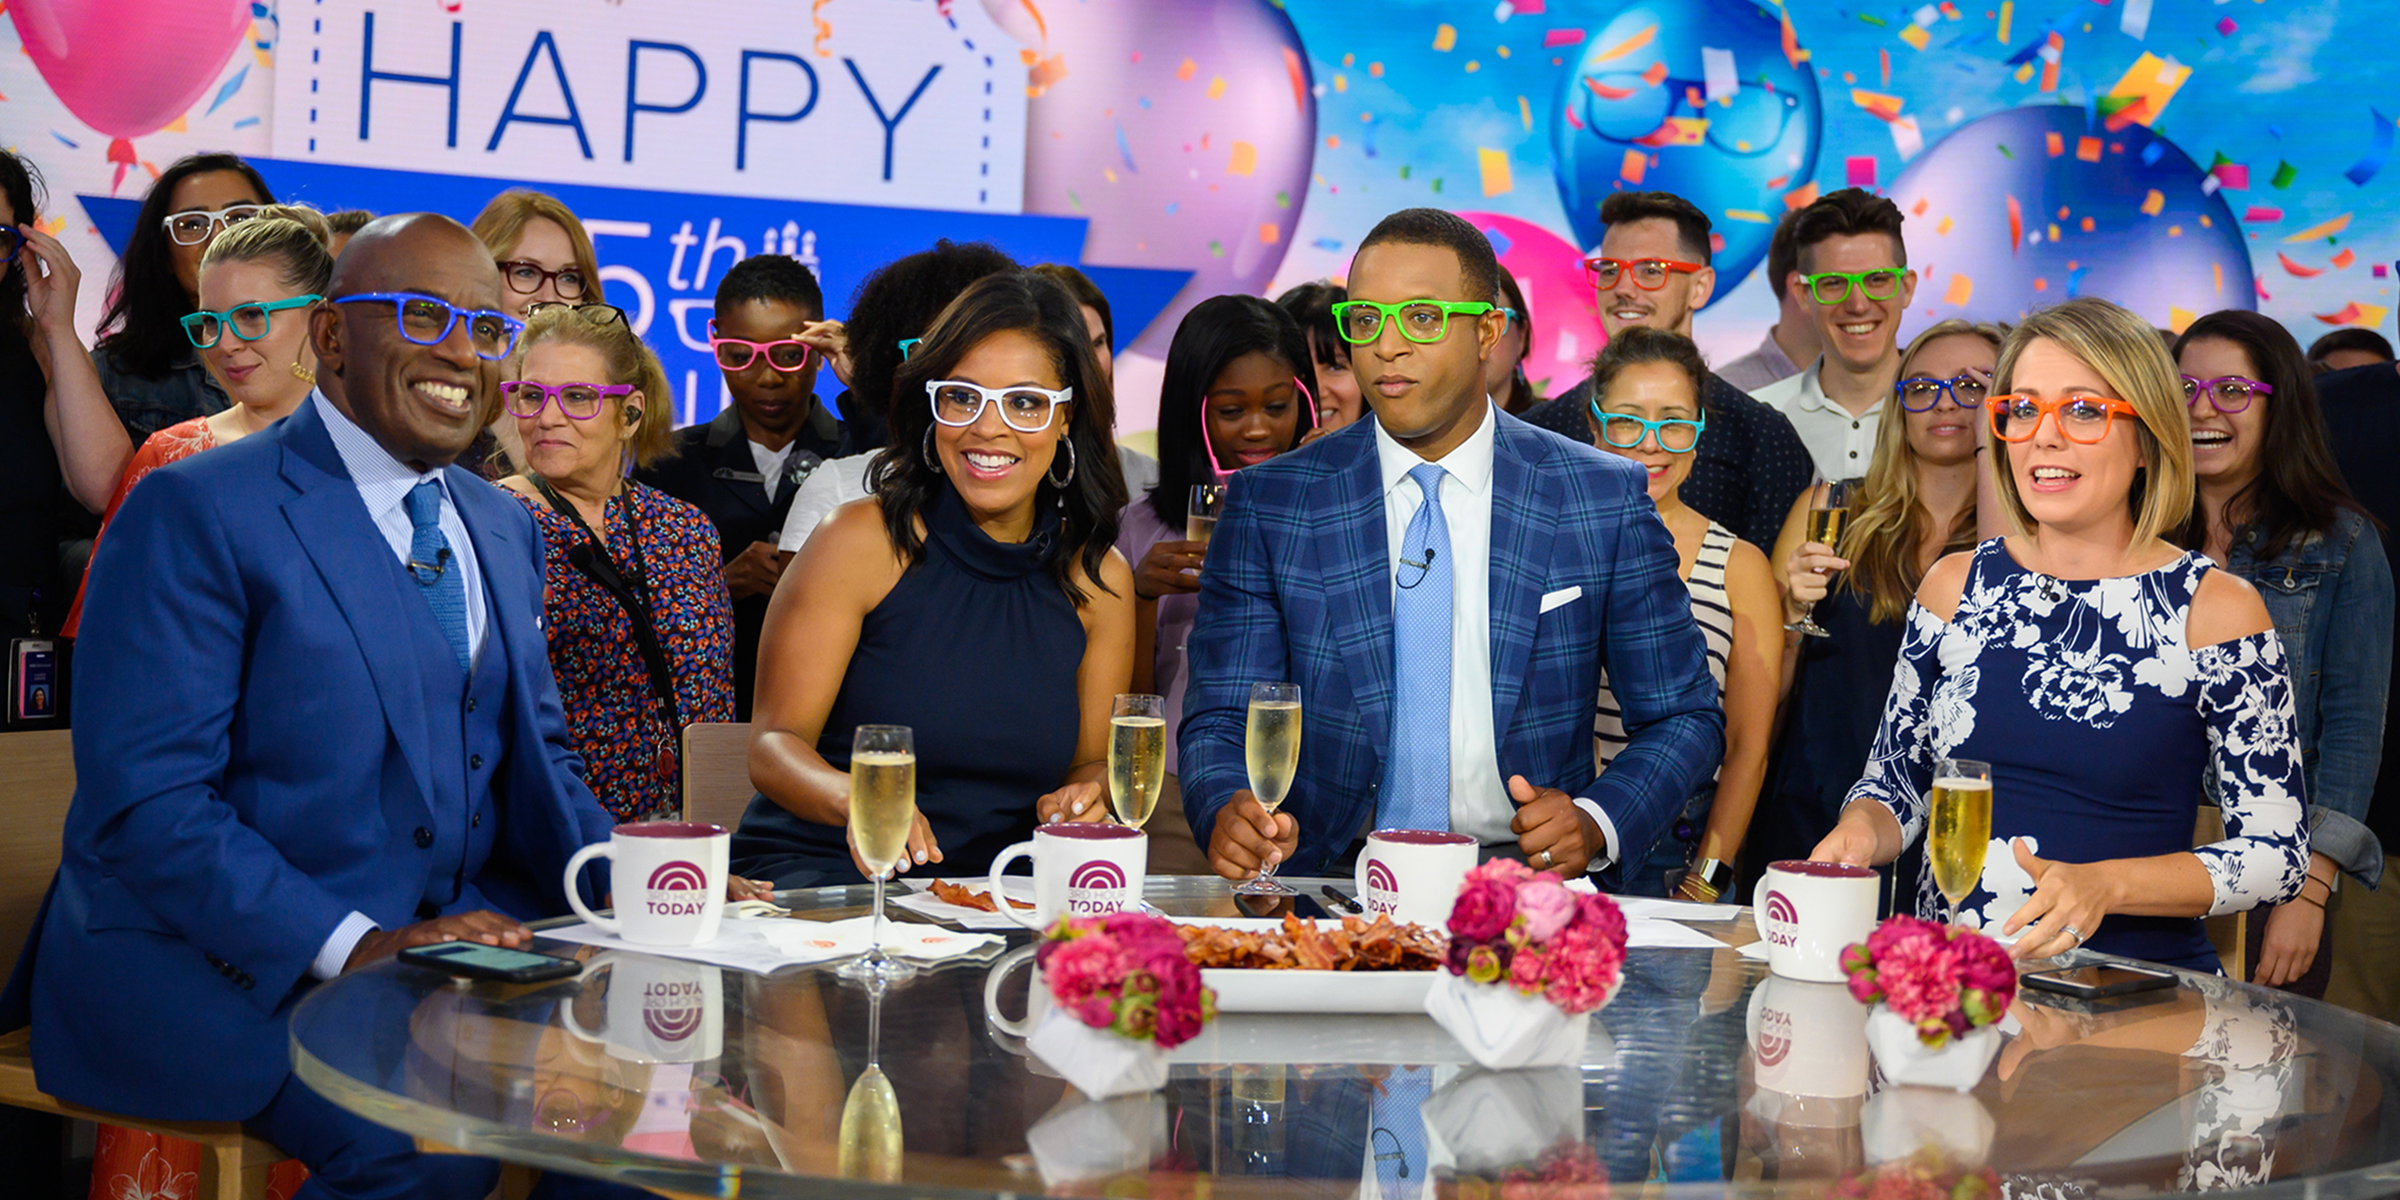 Al Roker surprised with early 65th birthday party on TODAY